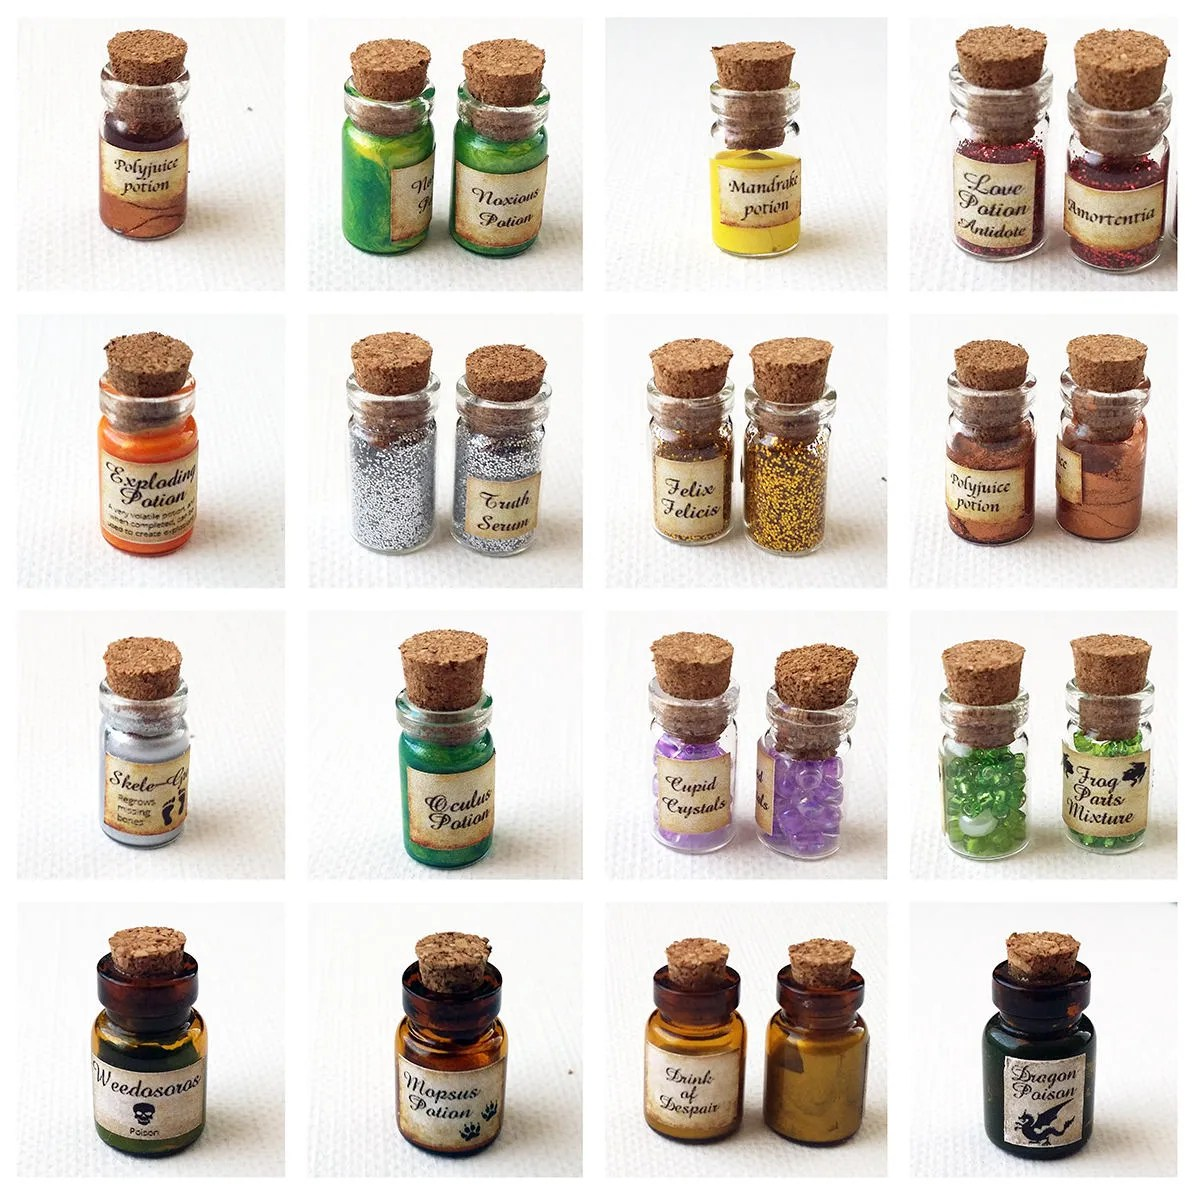 Printable Dollhouse Potion Labels Book Covers 1 12 Scale